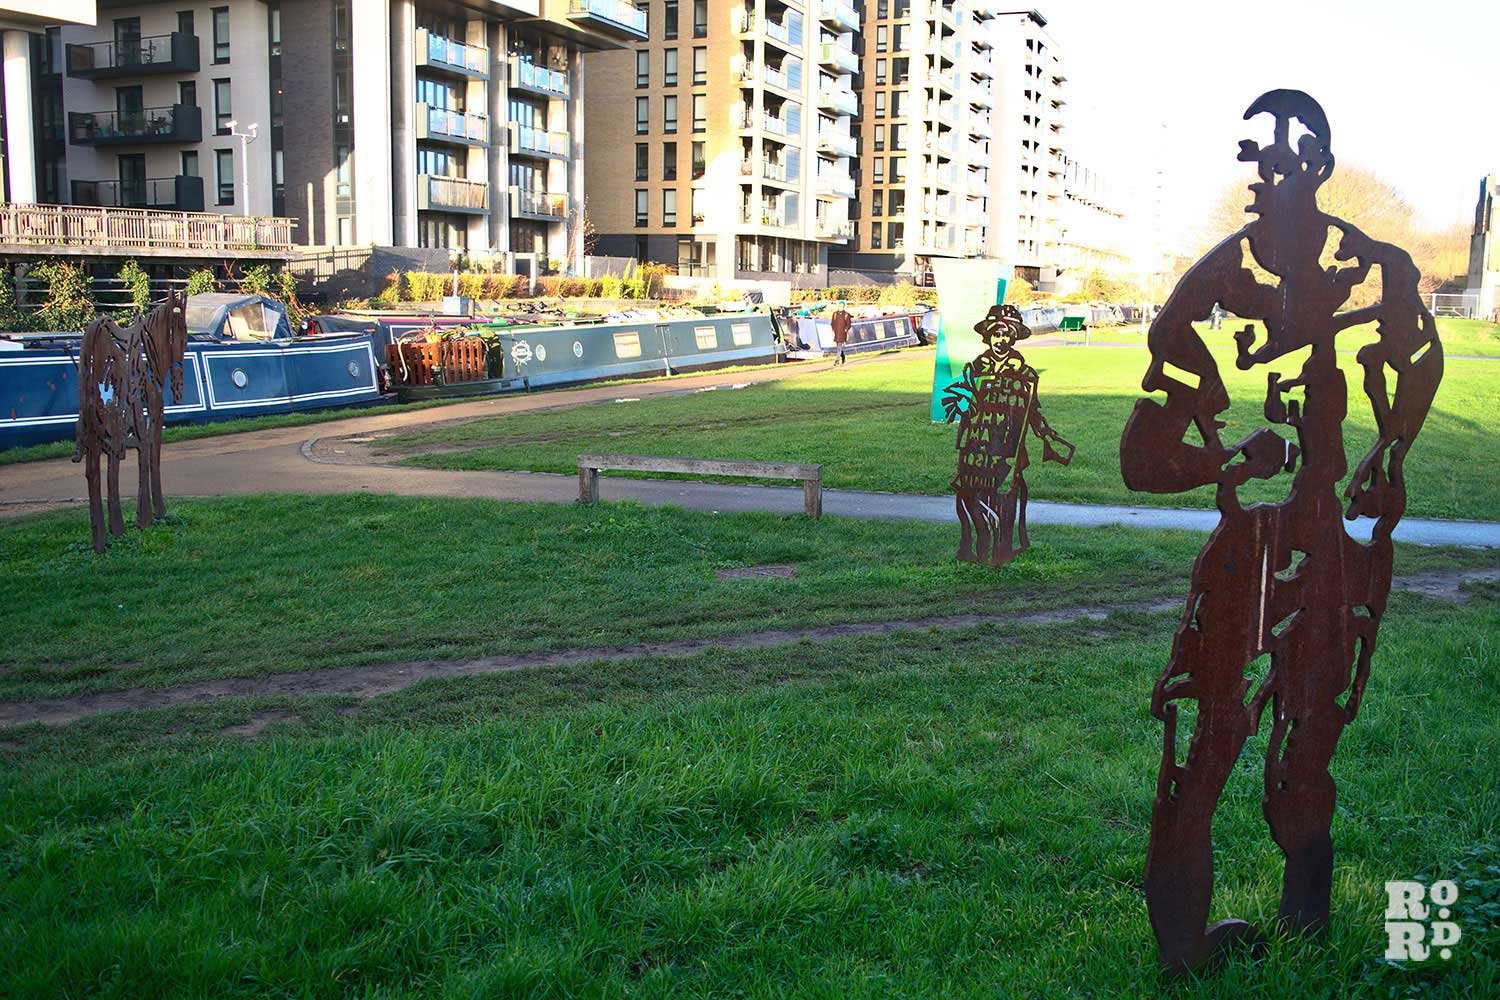 Steel statues in Mile End Park